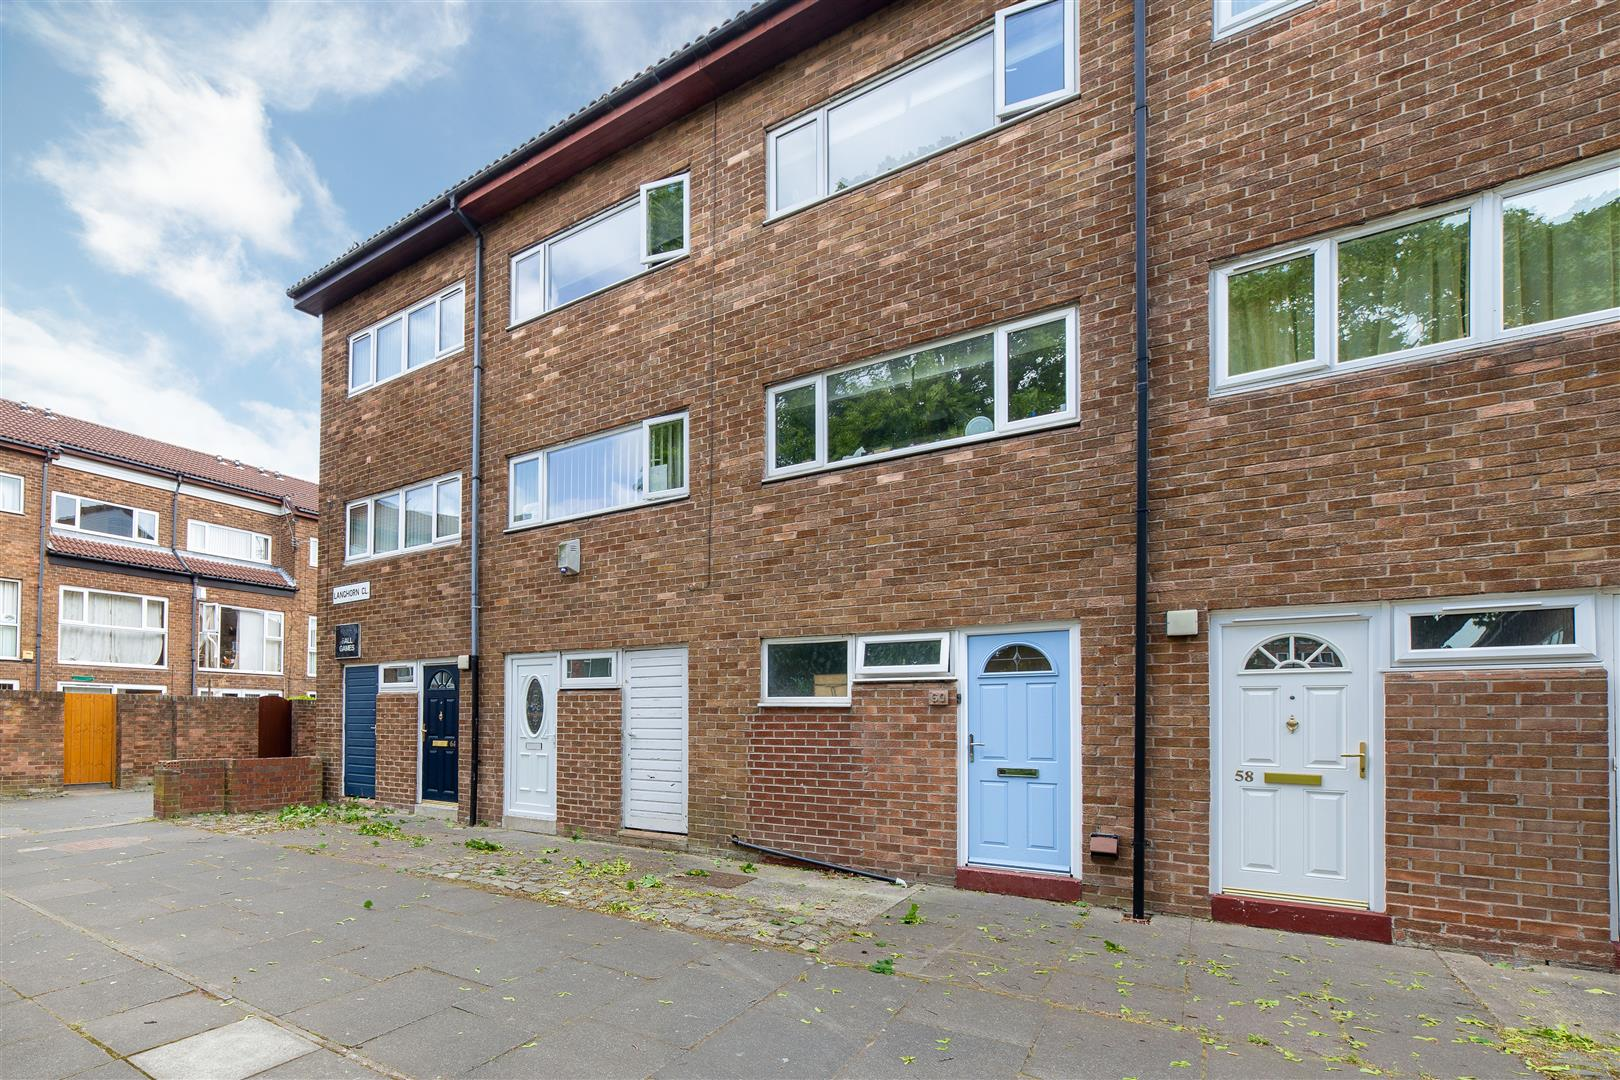 3 bed town house for sale in Newcastle Upon Tyne, NE6 1XL 0